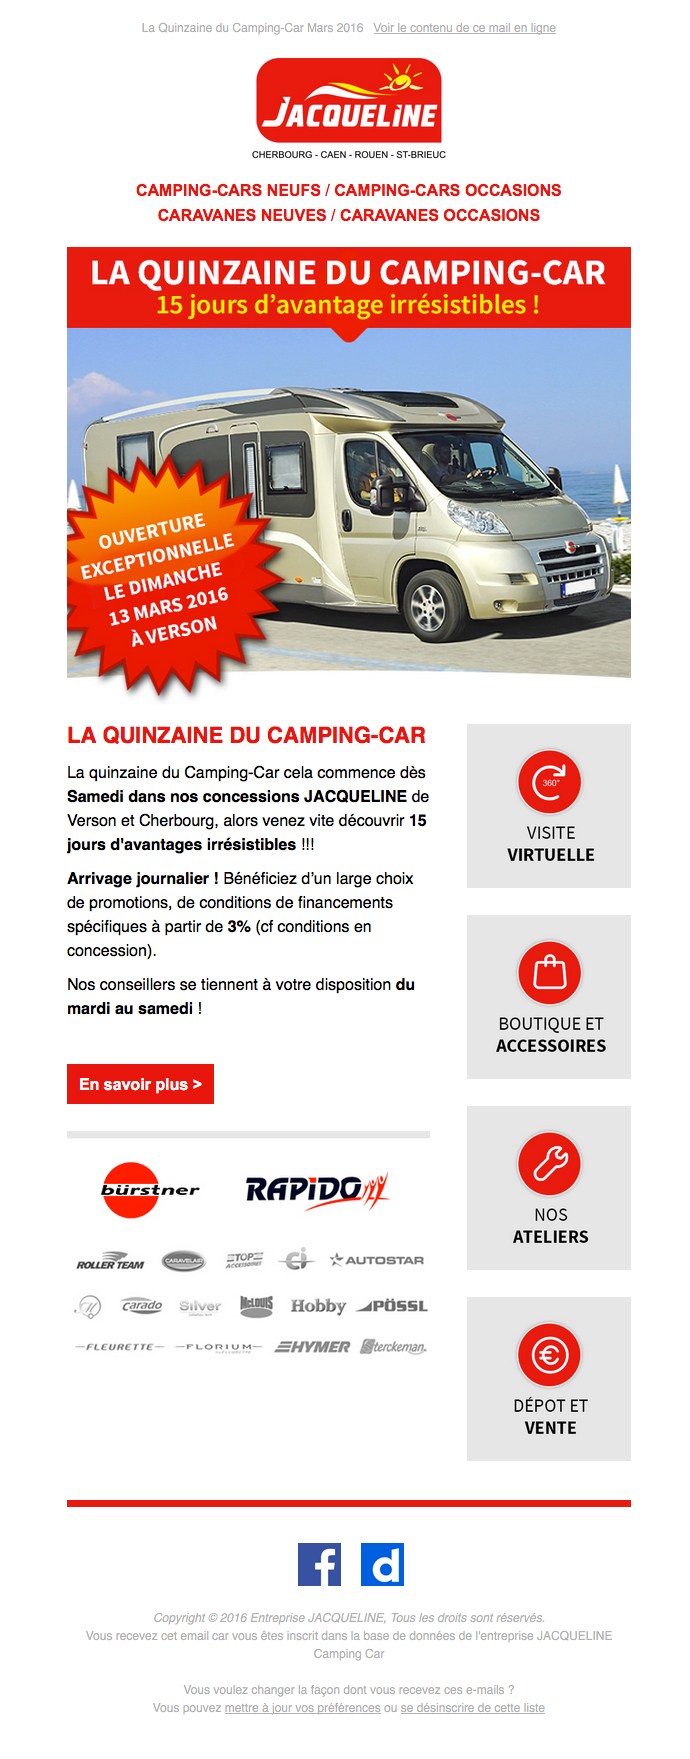 Camping car occasion jacqueline rouen camping car zone telechargement